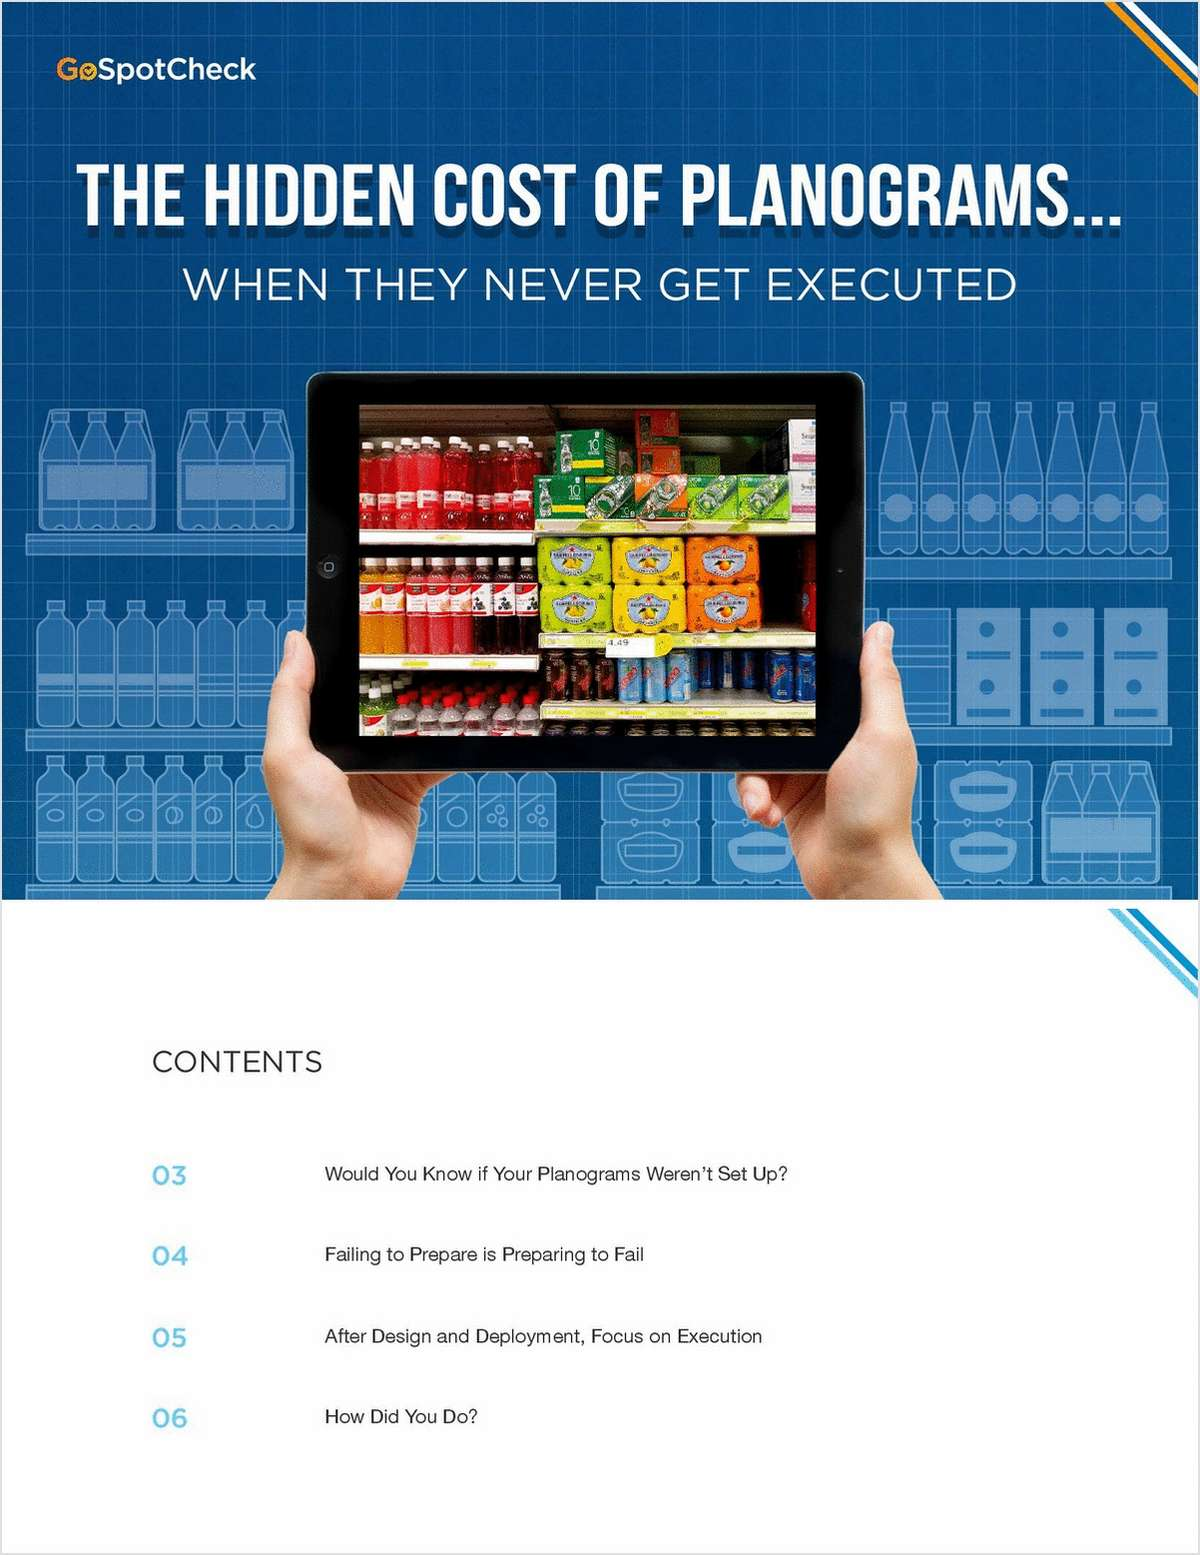 The Hidden Costs of Planograms When They Never Get Executed